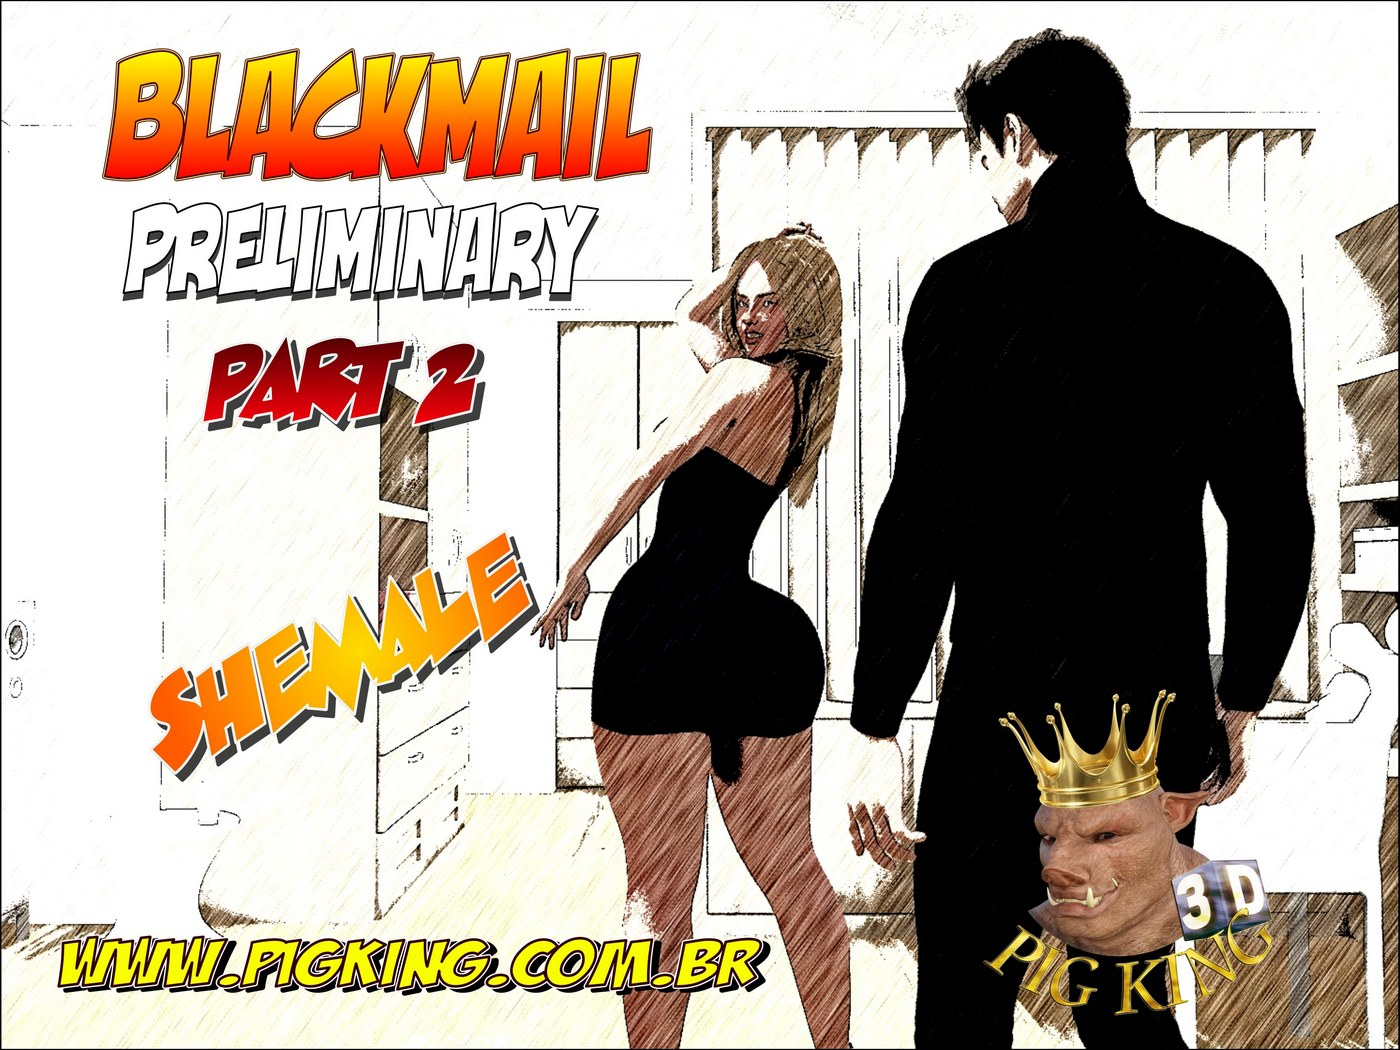 Blackmail Preliminary Part 2- Pig King porn comics 8 muses